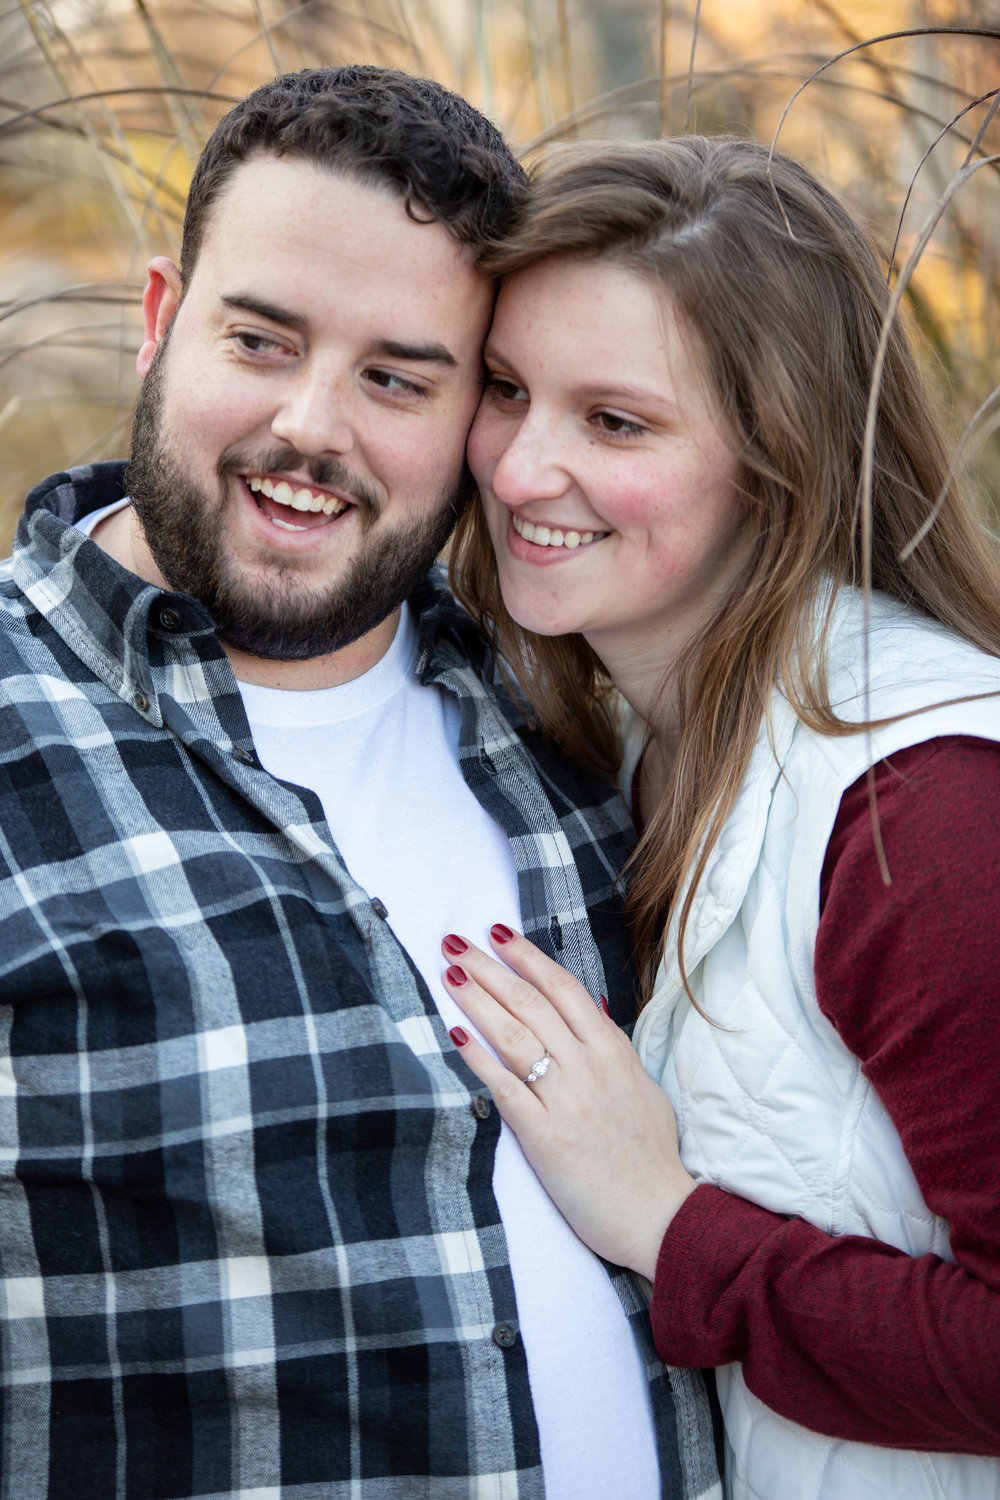 Fall-Laughing-together-bench-trees-duck-pond-virginia-tech-blacksburg-roanoke-engaged-warm